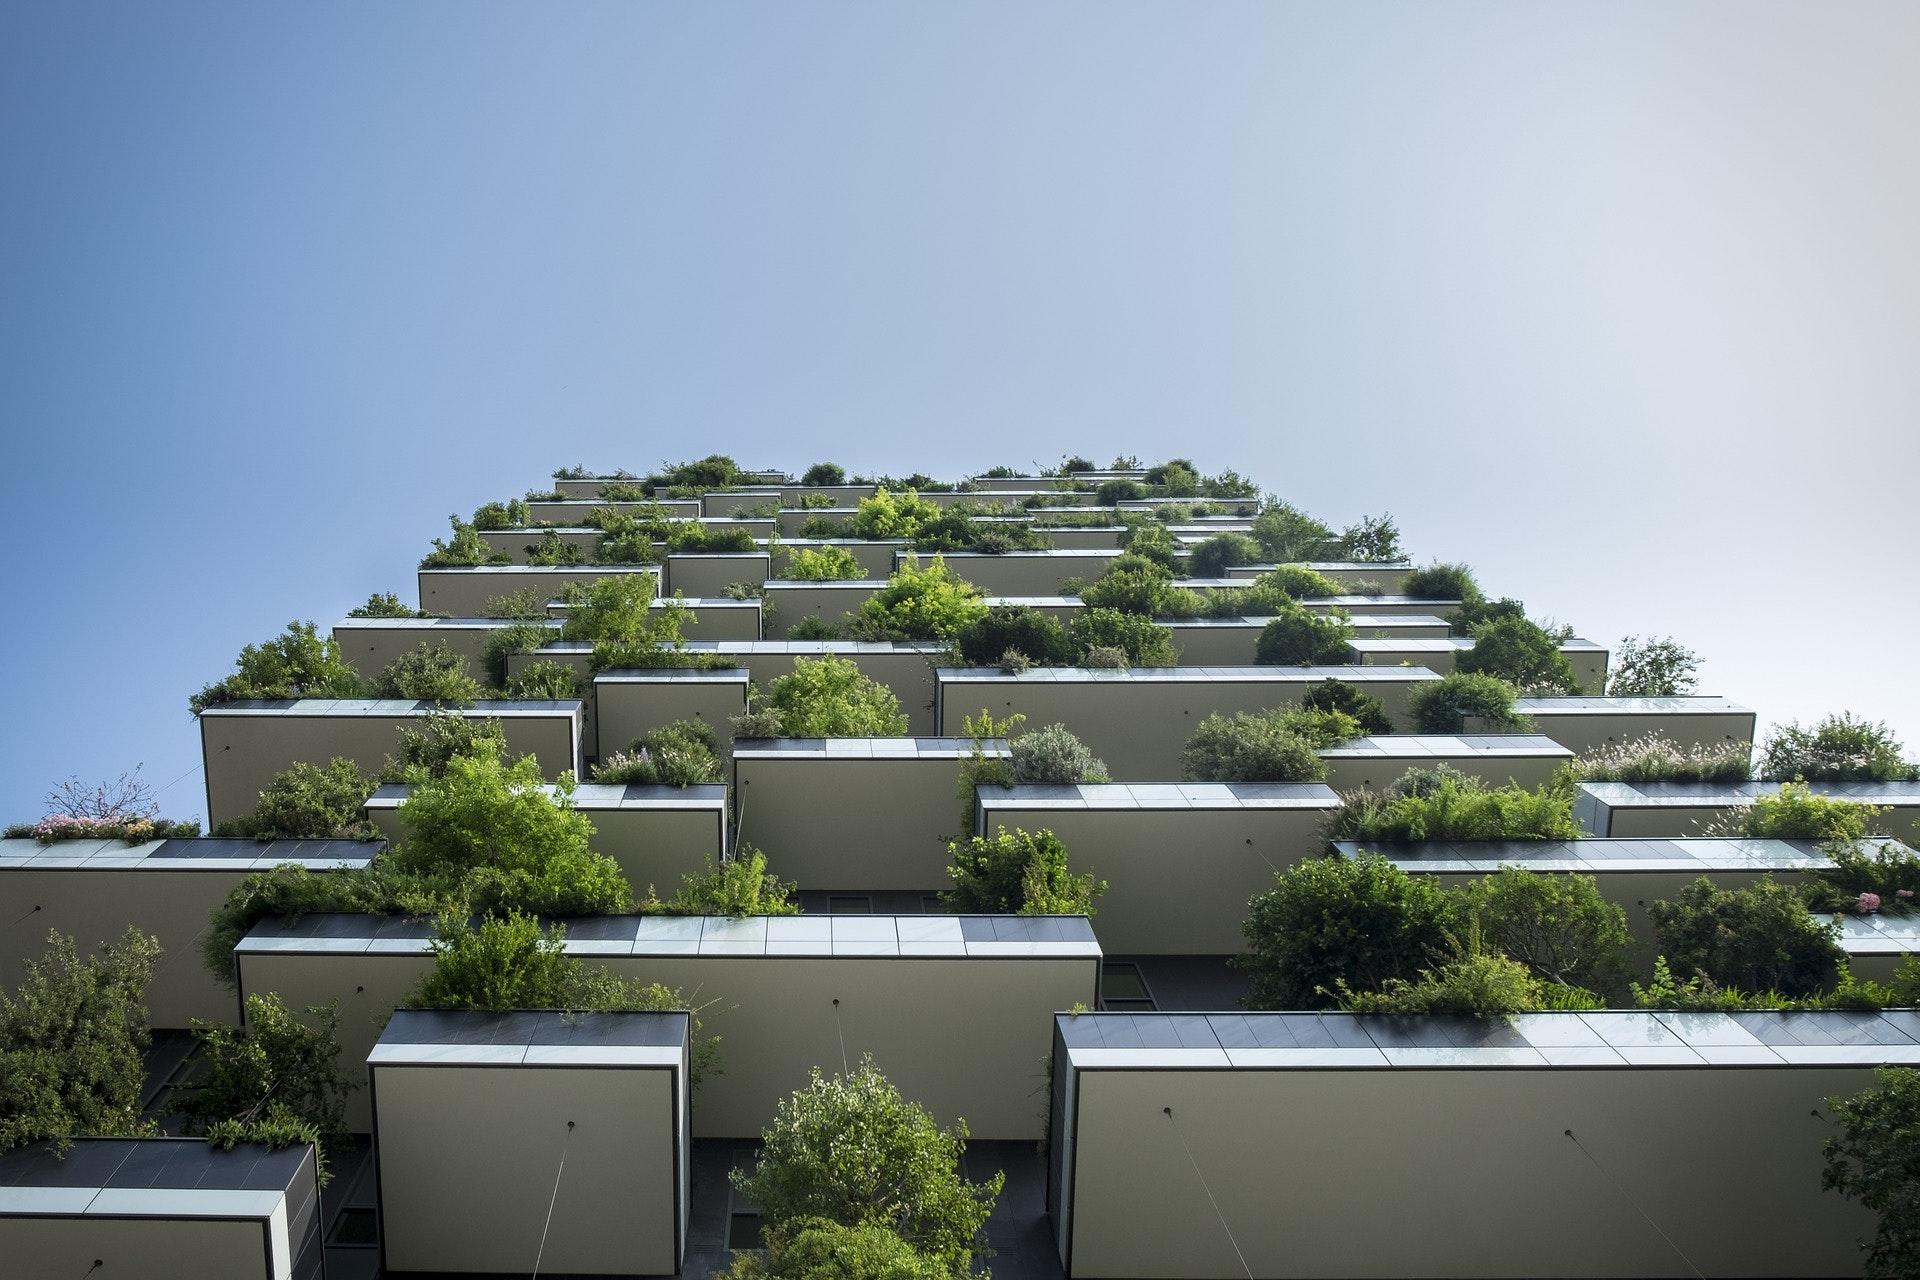 May contain: tall apartment building, with lots of trees on balconies